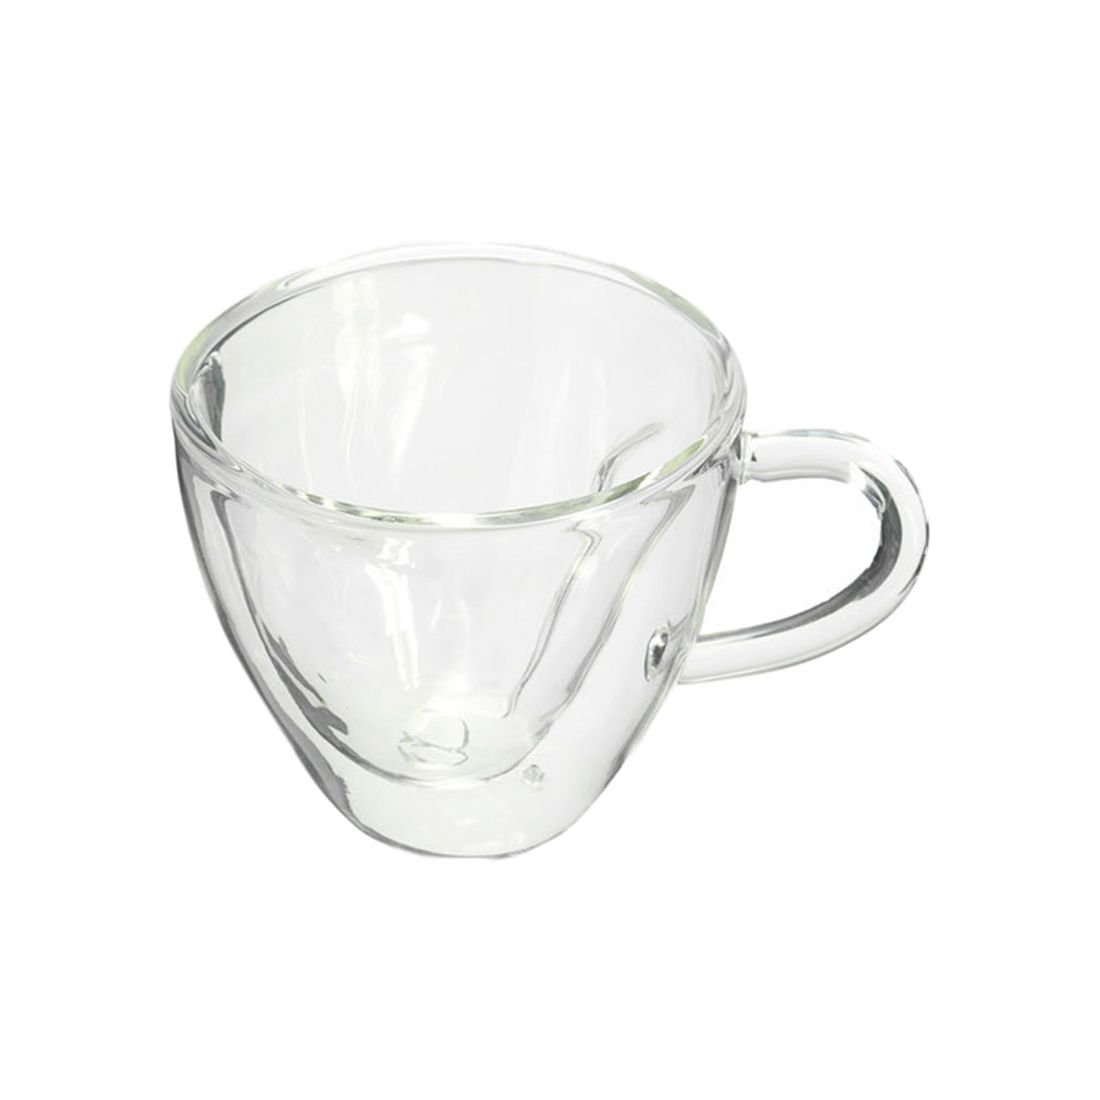 TOOGOO(R) Heart Shaped Heat Resistant Double Wall Layer Clear Glass Tea Cups Mug, 180Ml